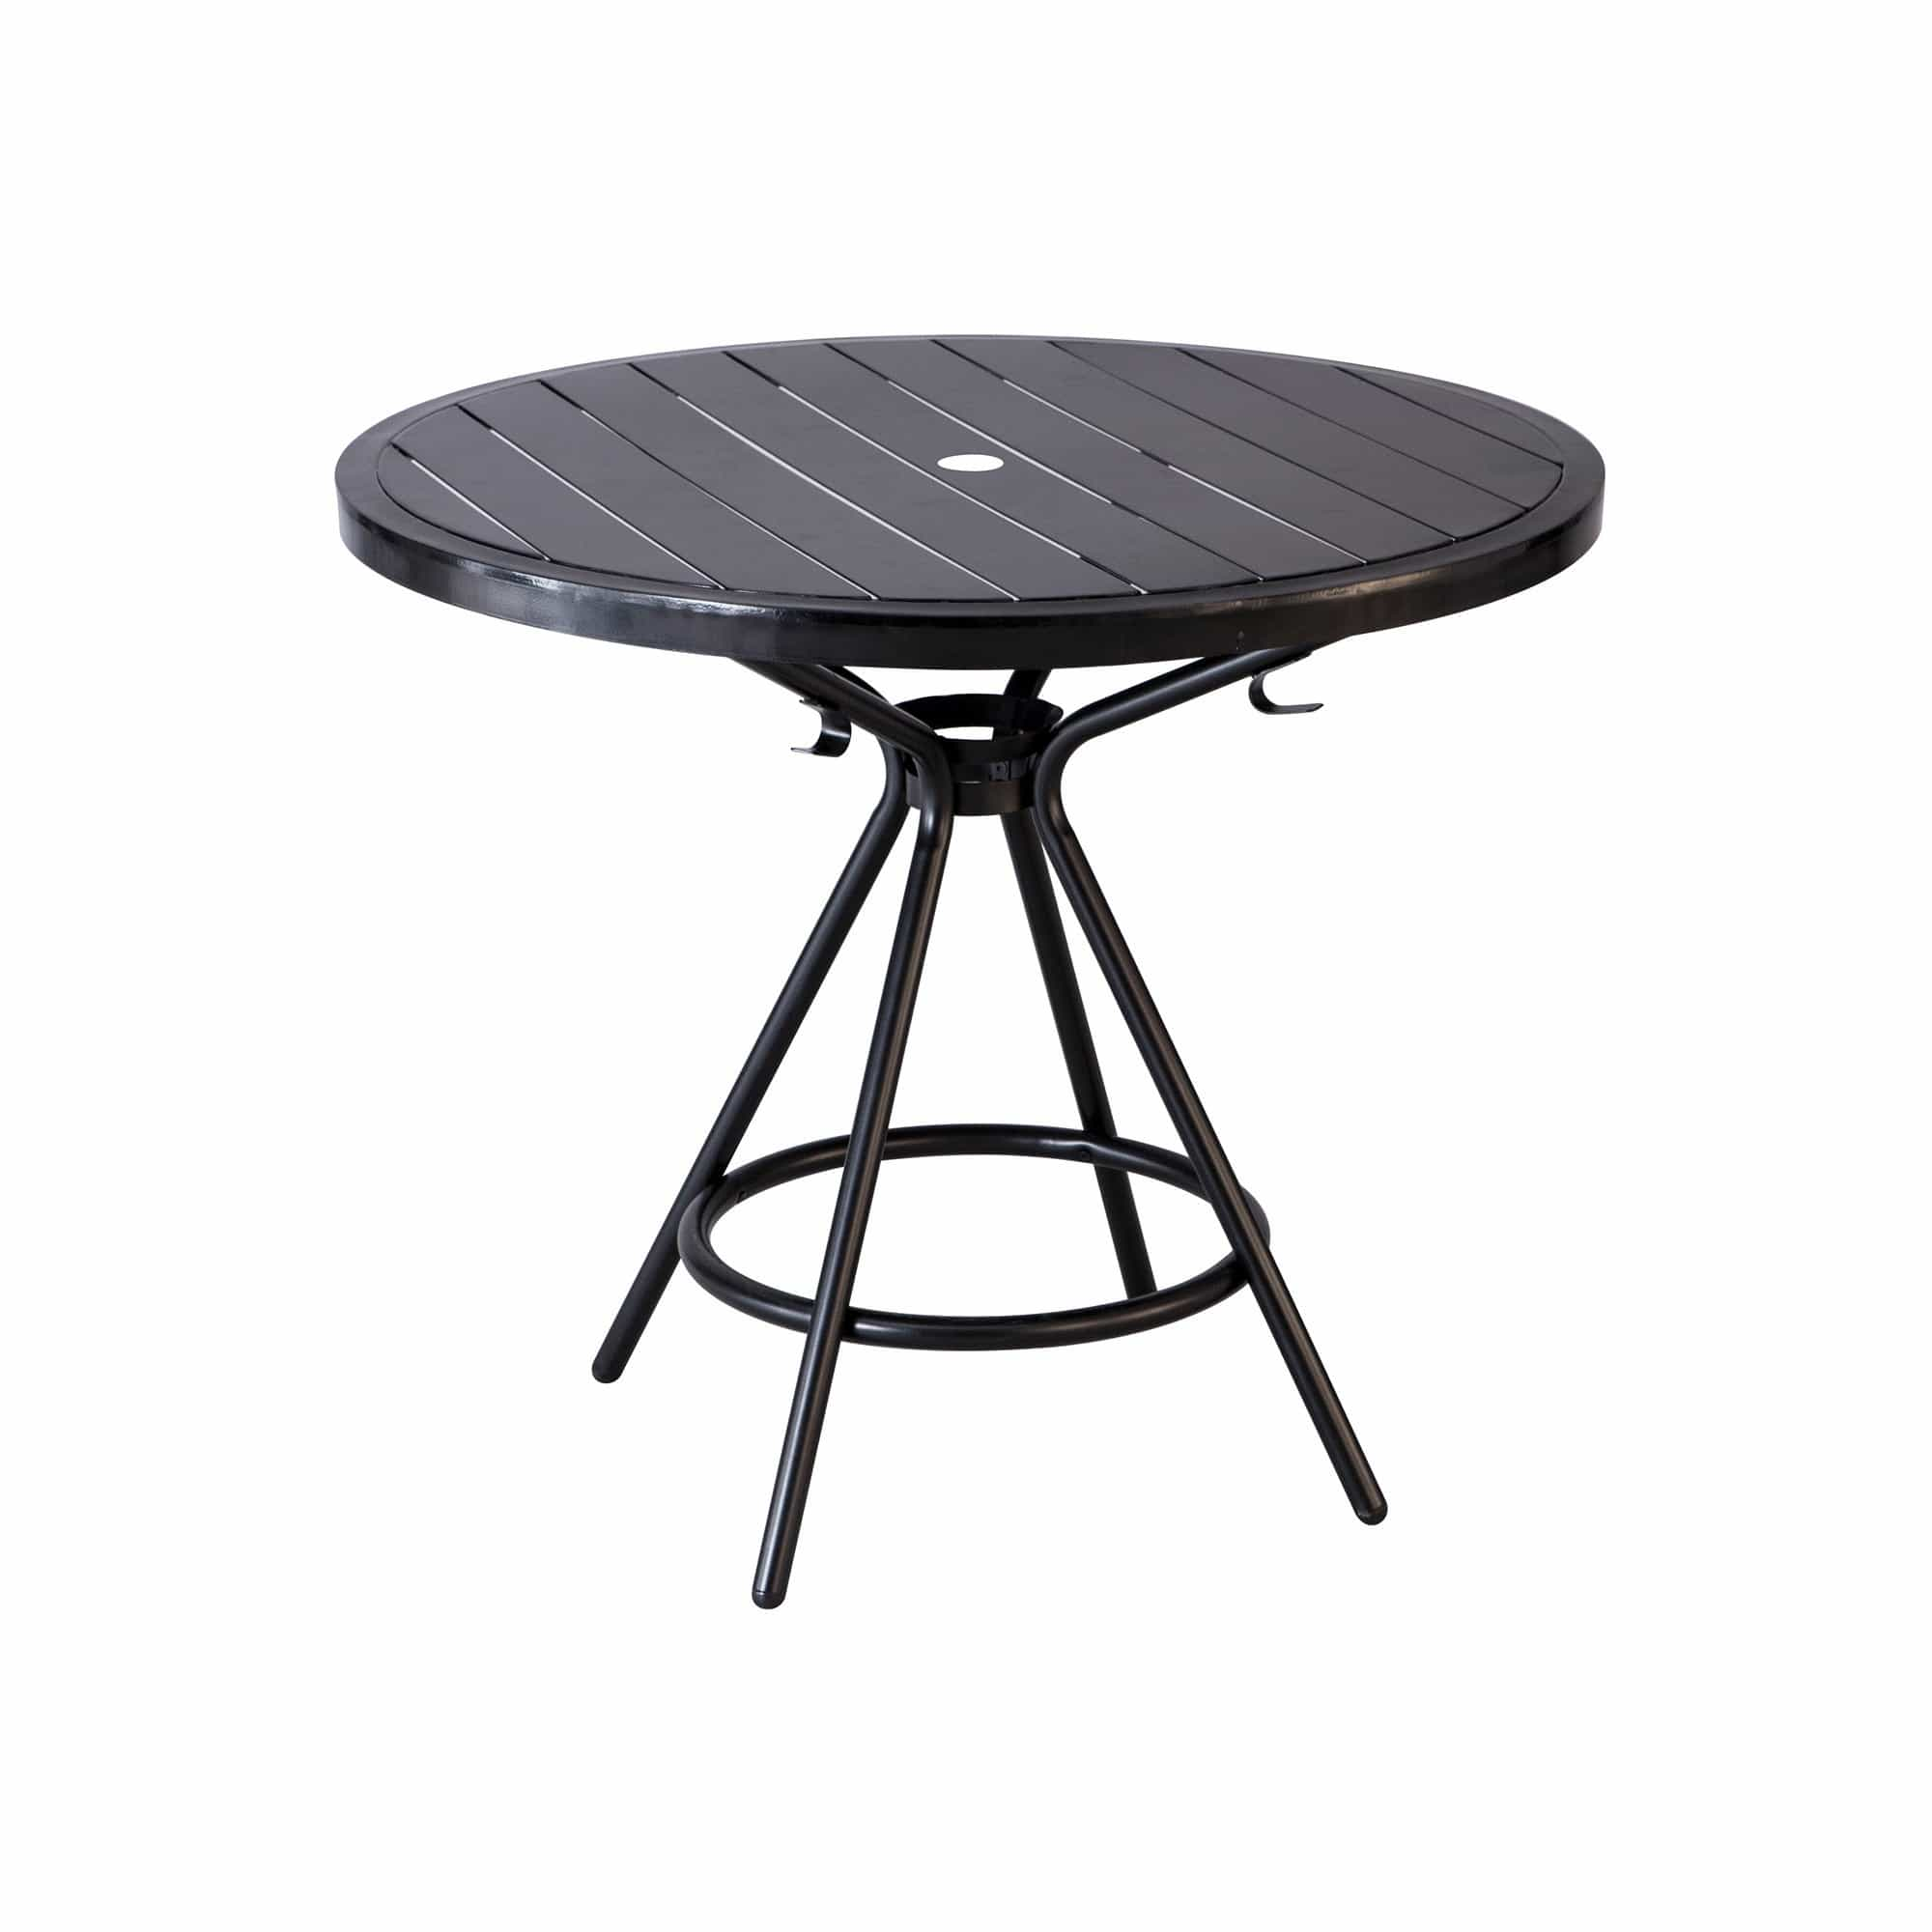 bedinhome - 4362BL CoGo™ Outdoor/Indoor Weather Resistant 36 Inch Round Shape Black Steel Table With Hangup Hook - Safco - Outdoor/Indoor Table